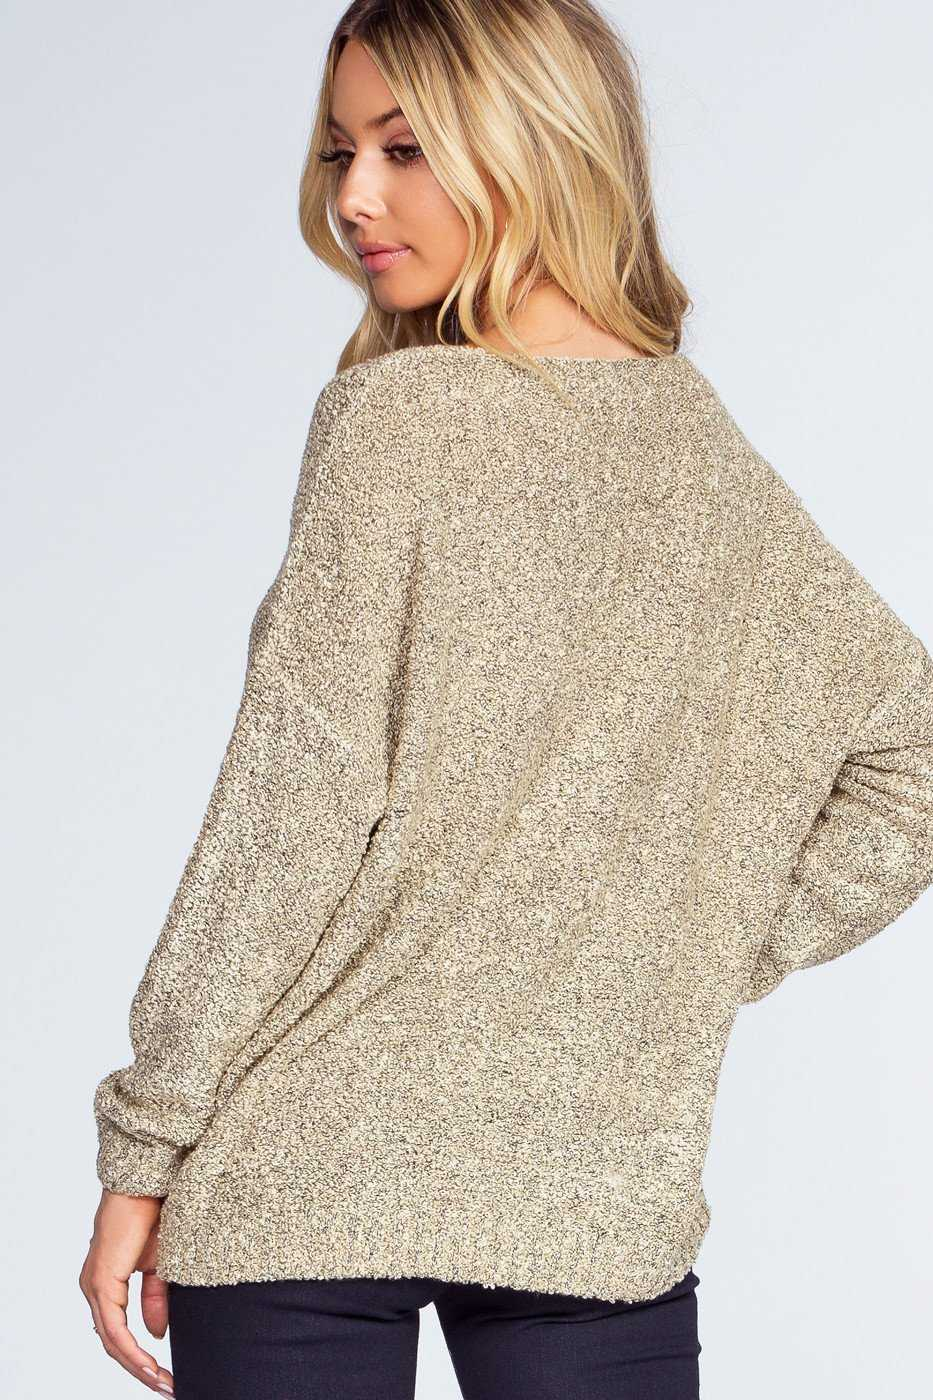 Tops - Wonder Girl Sweater - Taupe